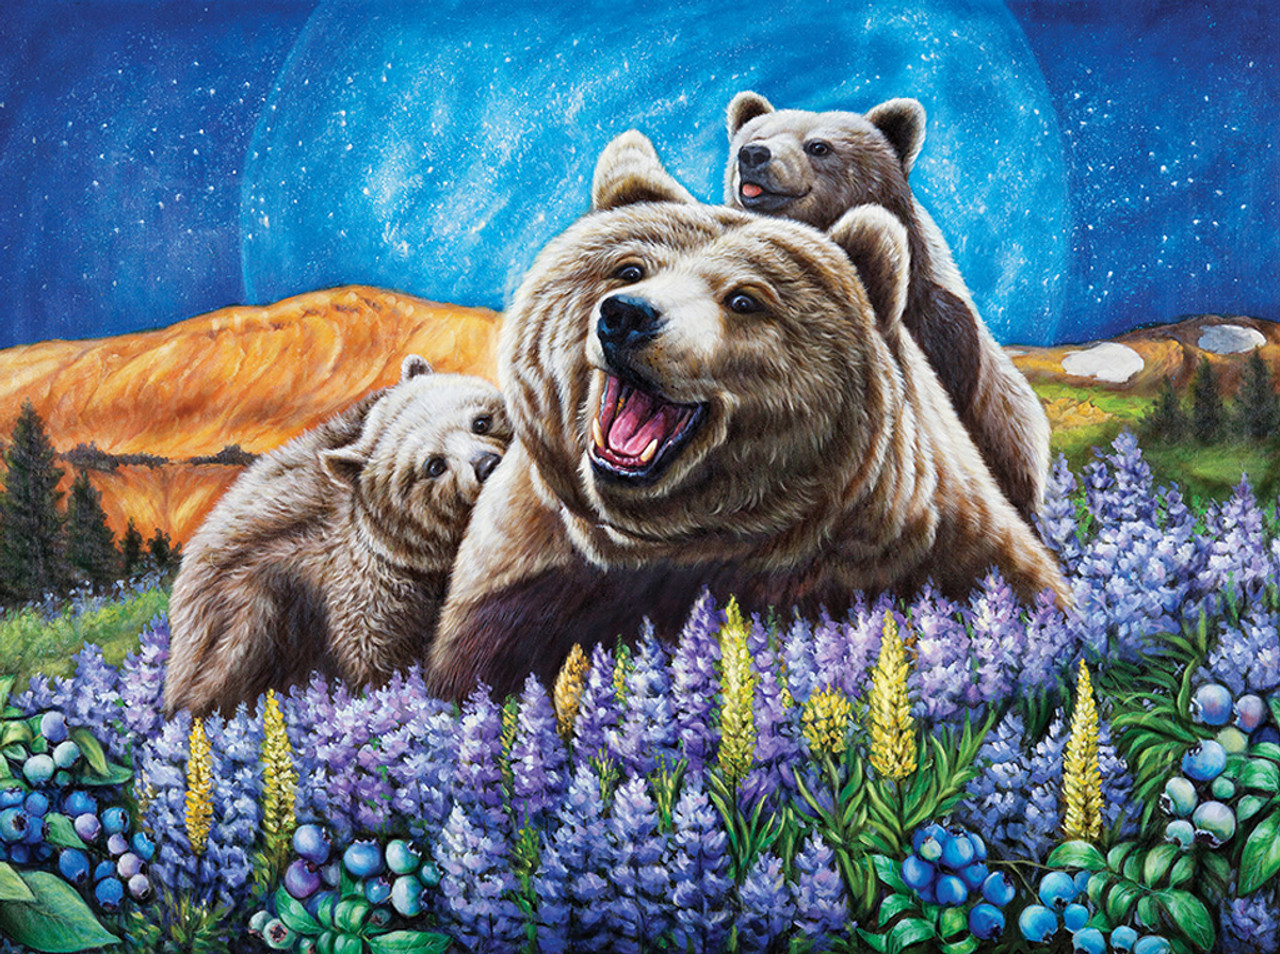 Blueberry Bears - 1000pc Jigsaw Puzzle by Lafayette Puzzle Factory